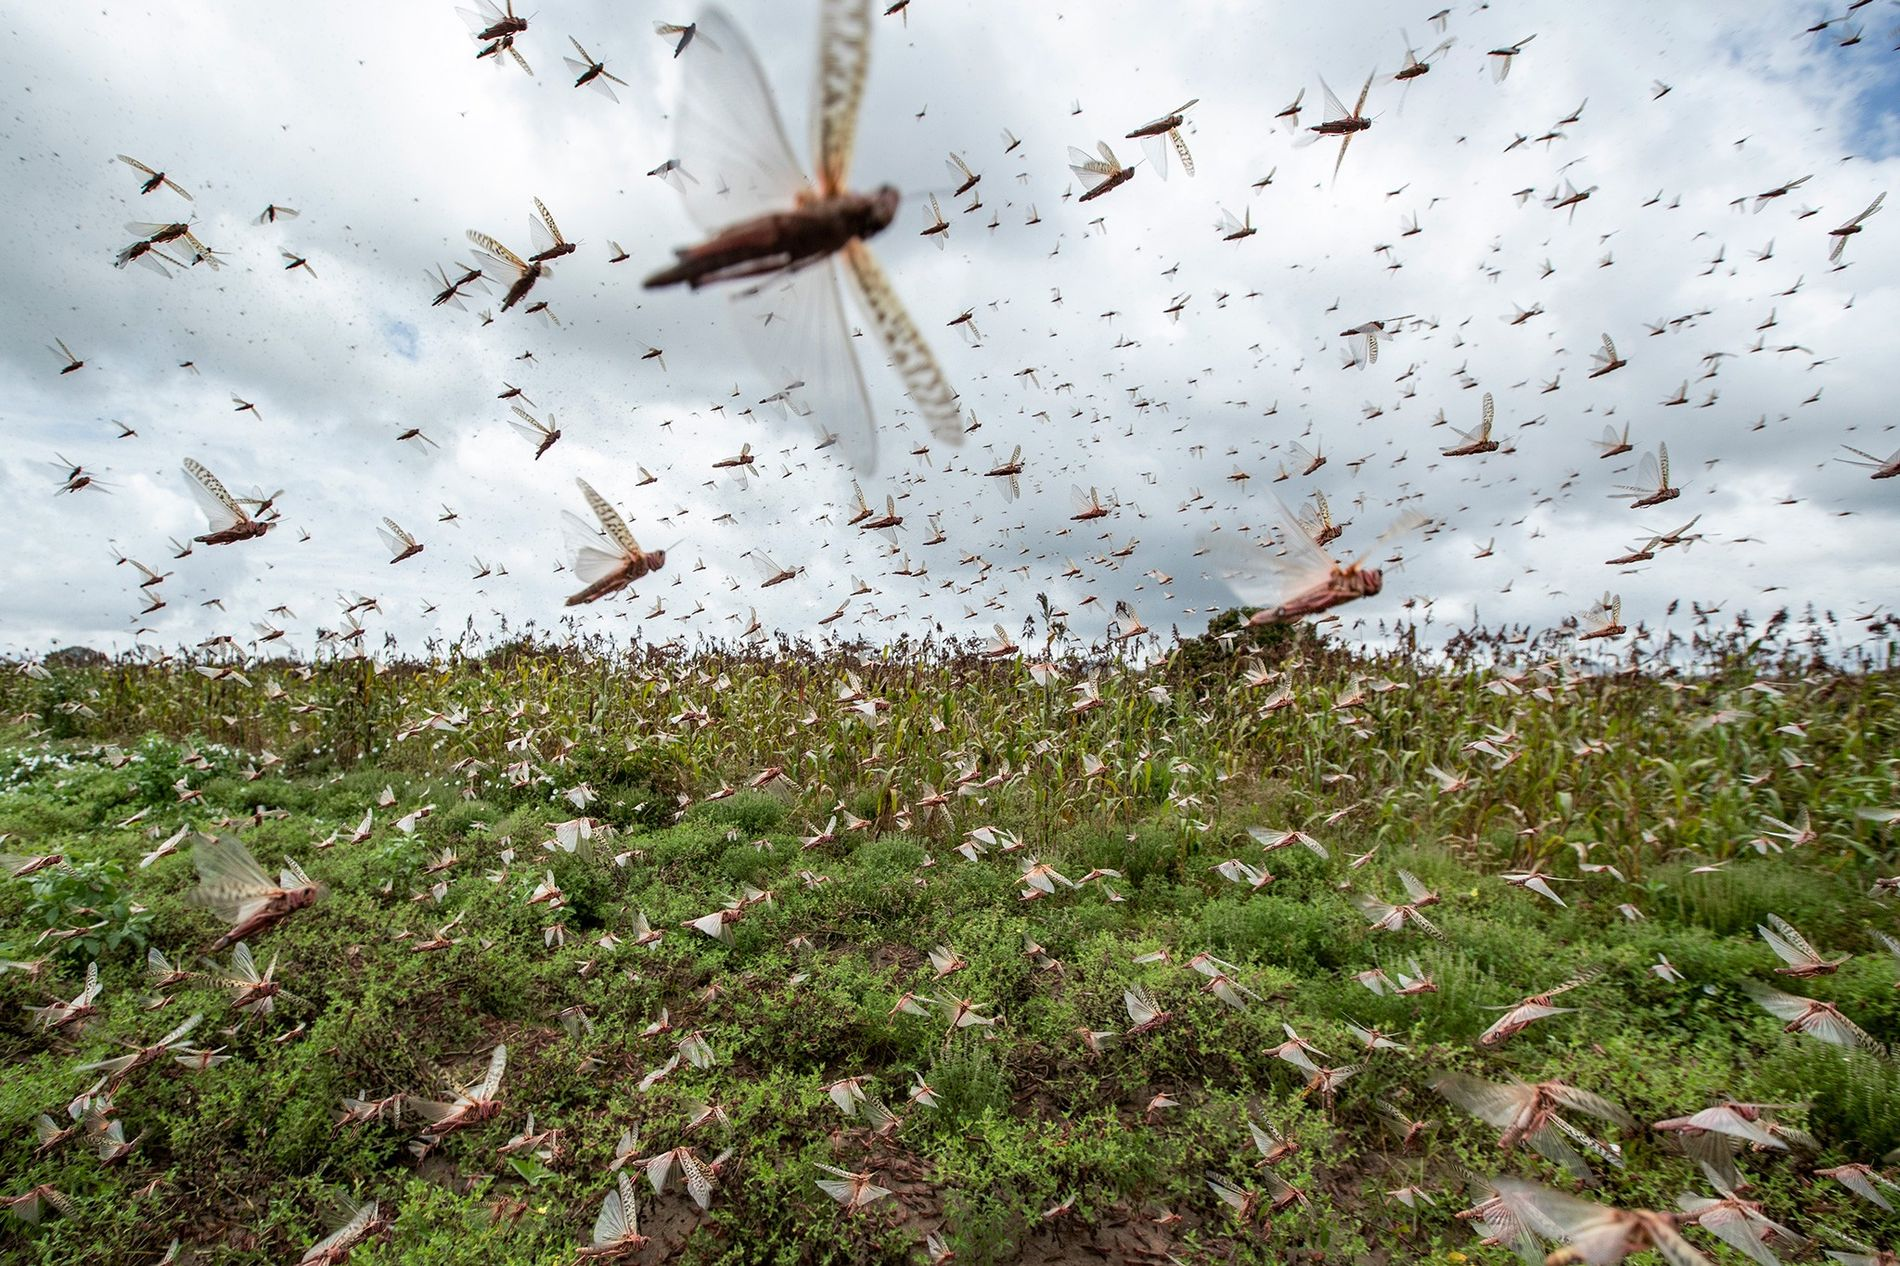 Desert locusts have swarmed into Kenya by the hundreds of millions from Somalia and Ethiopia, where ...